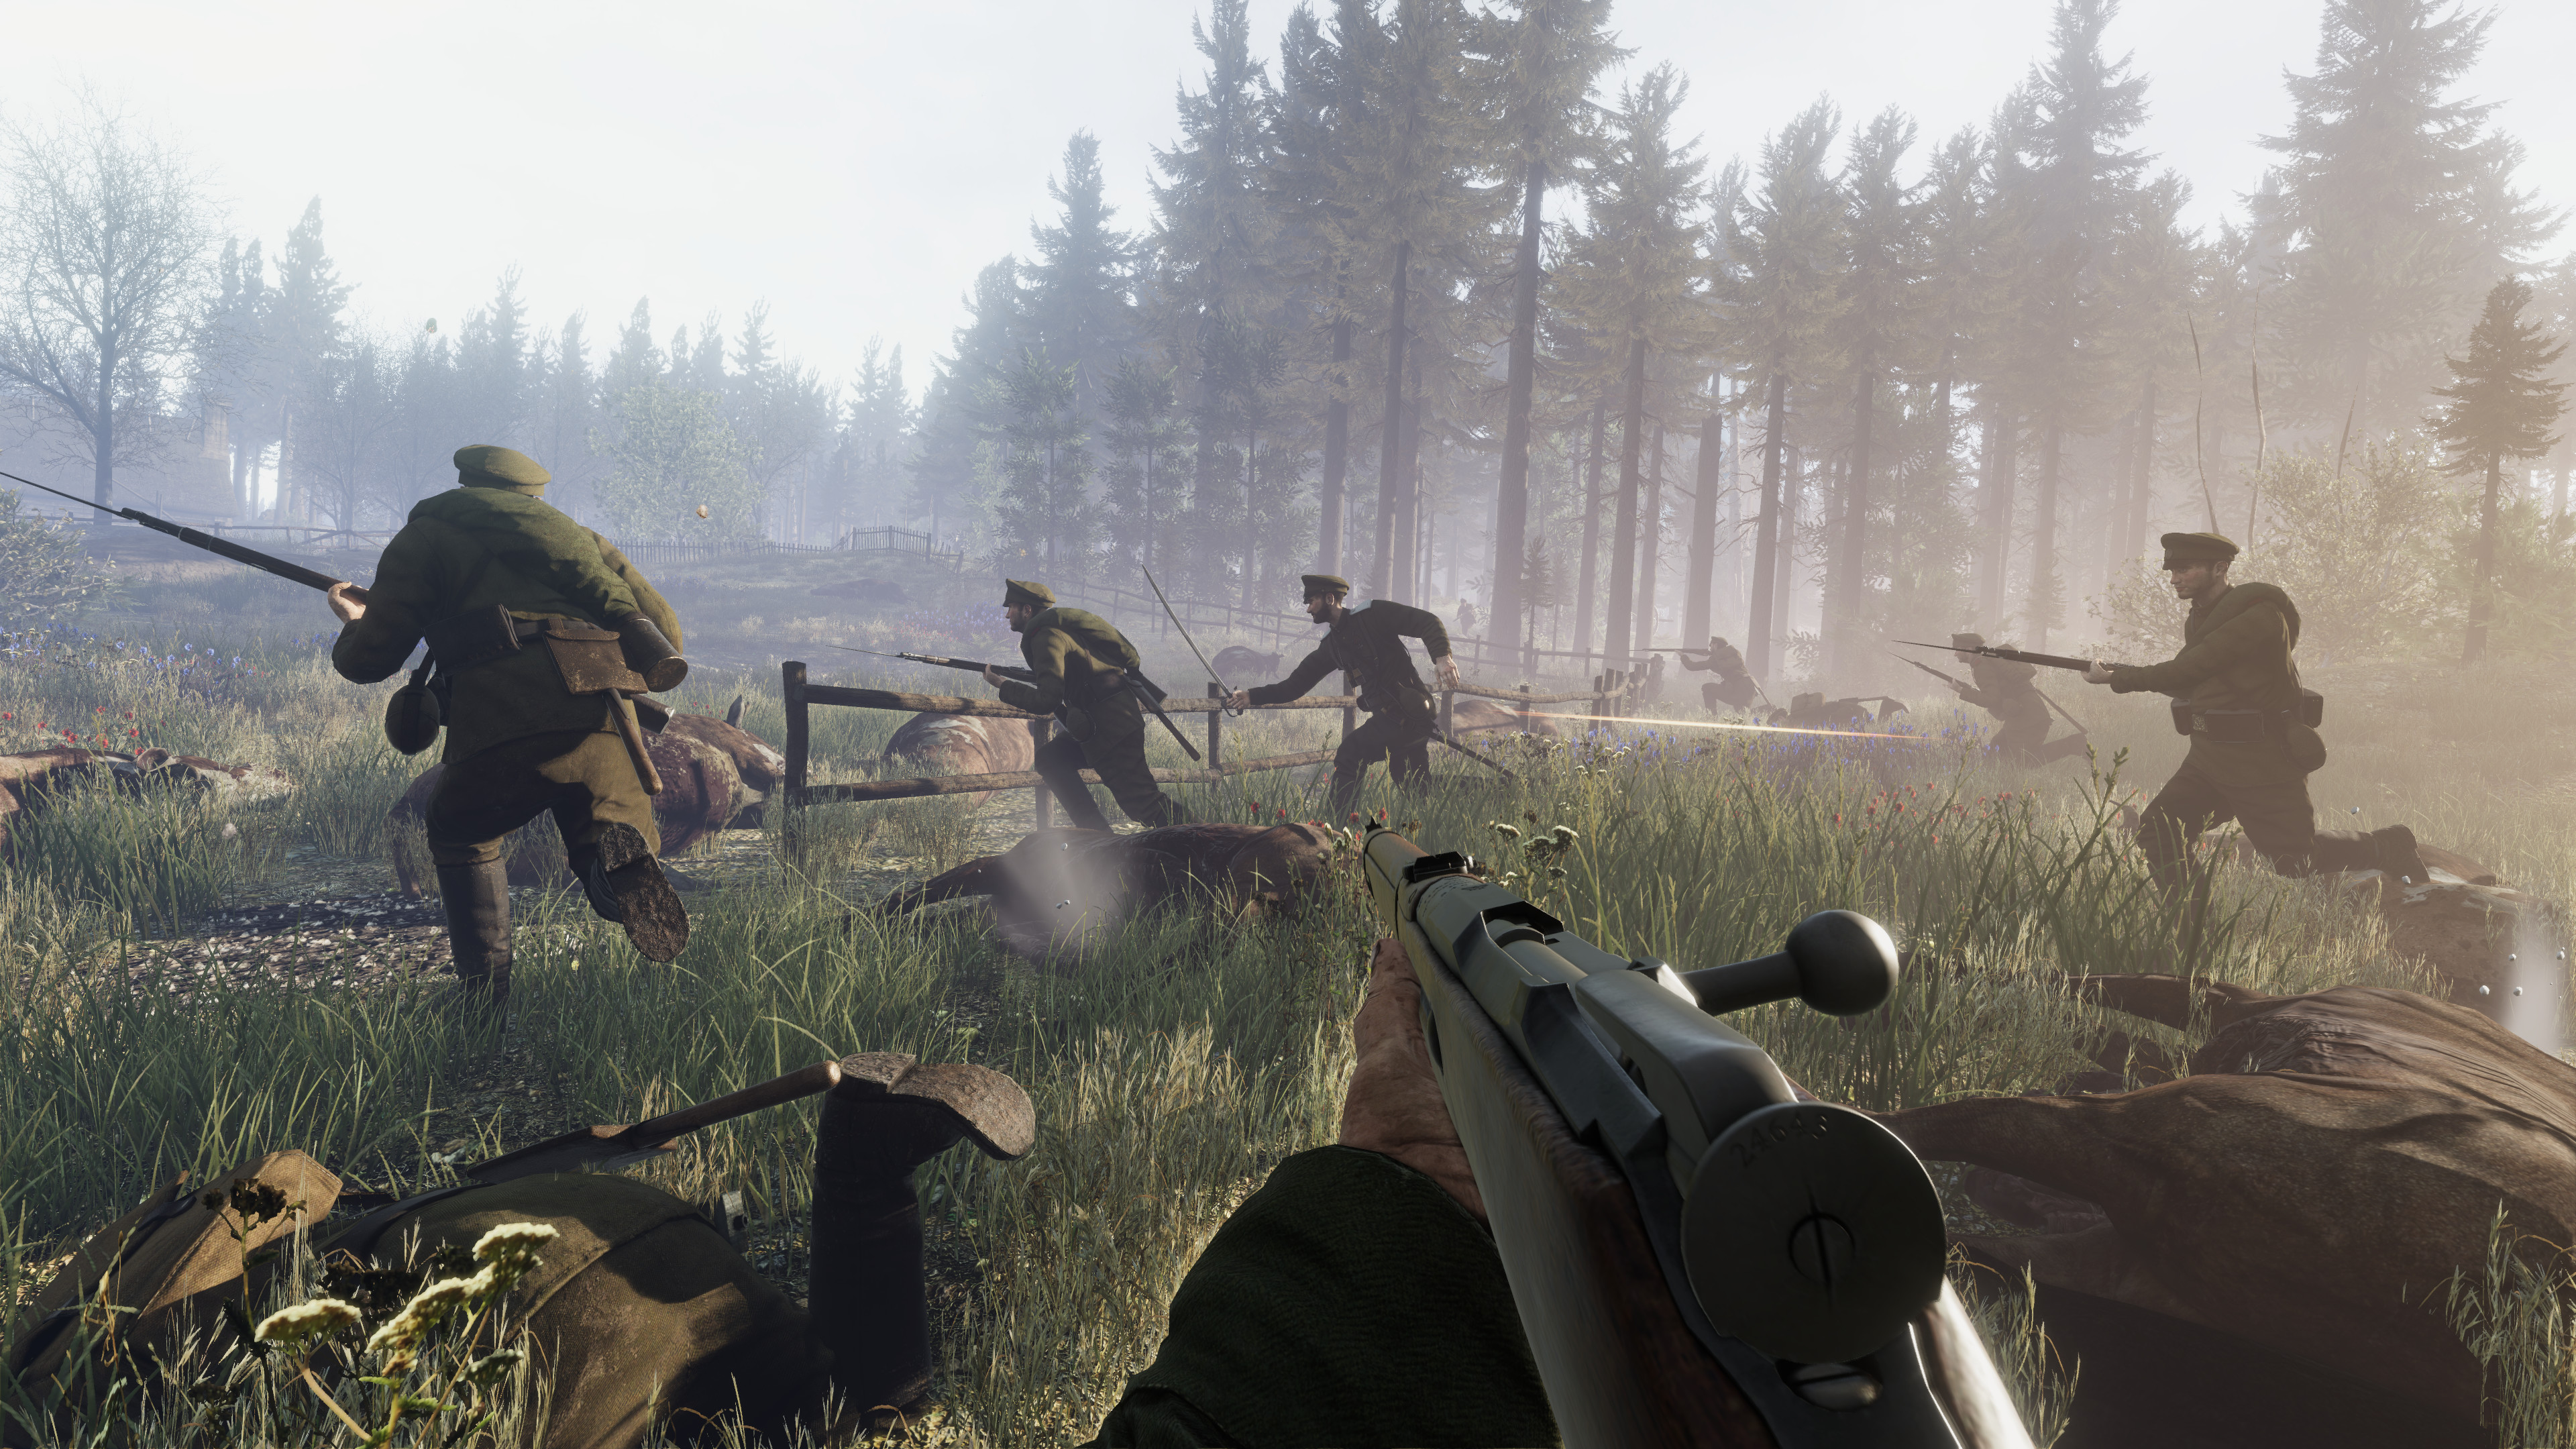 ww1 and tannenberg essay The 1914-1918 ww1 game series currently includes verdun and tannenberg developed during world war i by the so you wrote a 10,000 word essay about how.